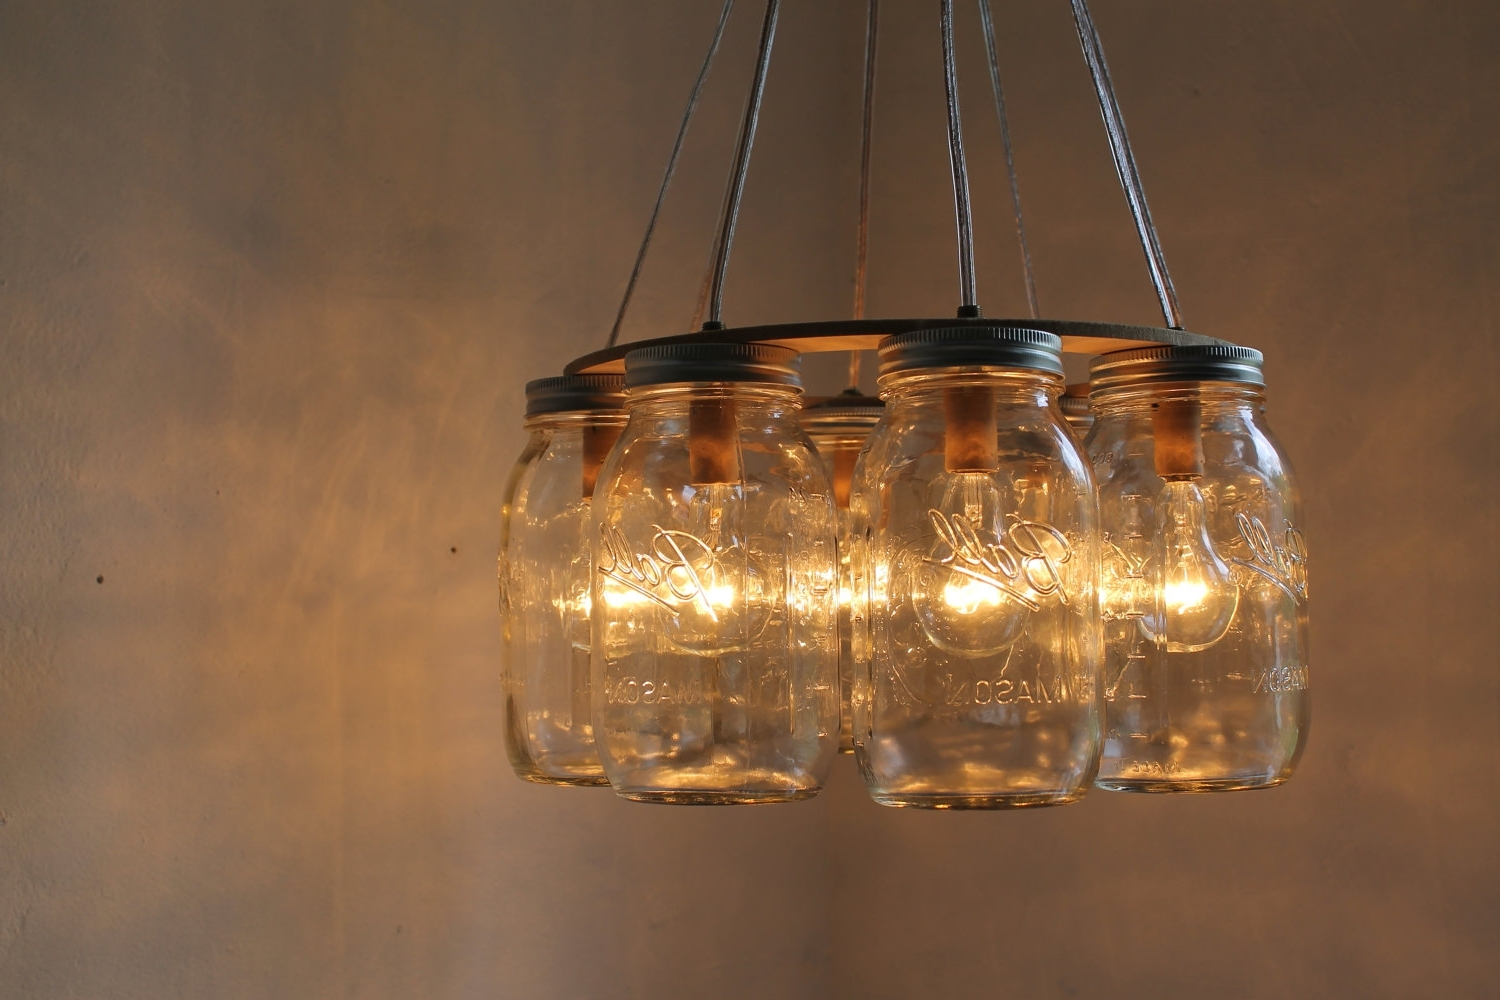 Most Current Small Rustic Lighting Fixtures : Rustic Lighting Fixtures Ideas Pertaining To Small Rustic Chandeliers (View 4 of 15)